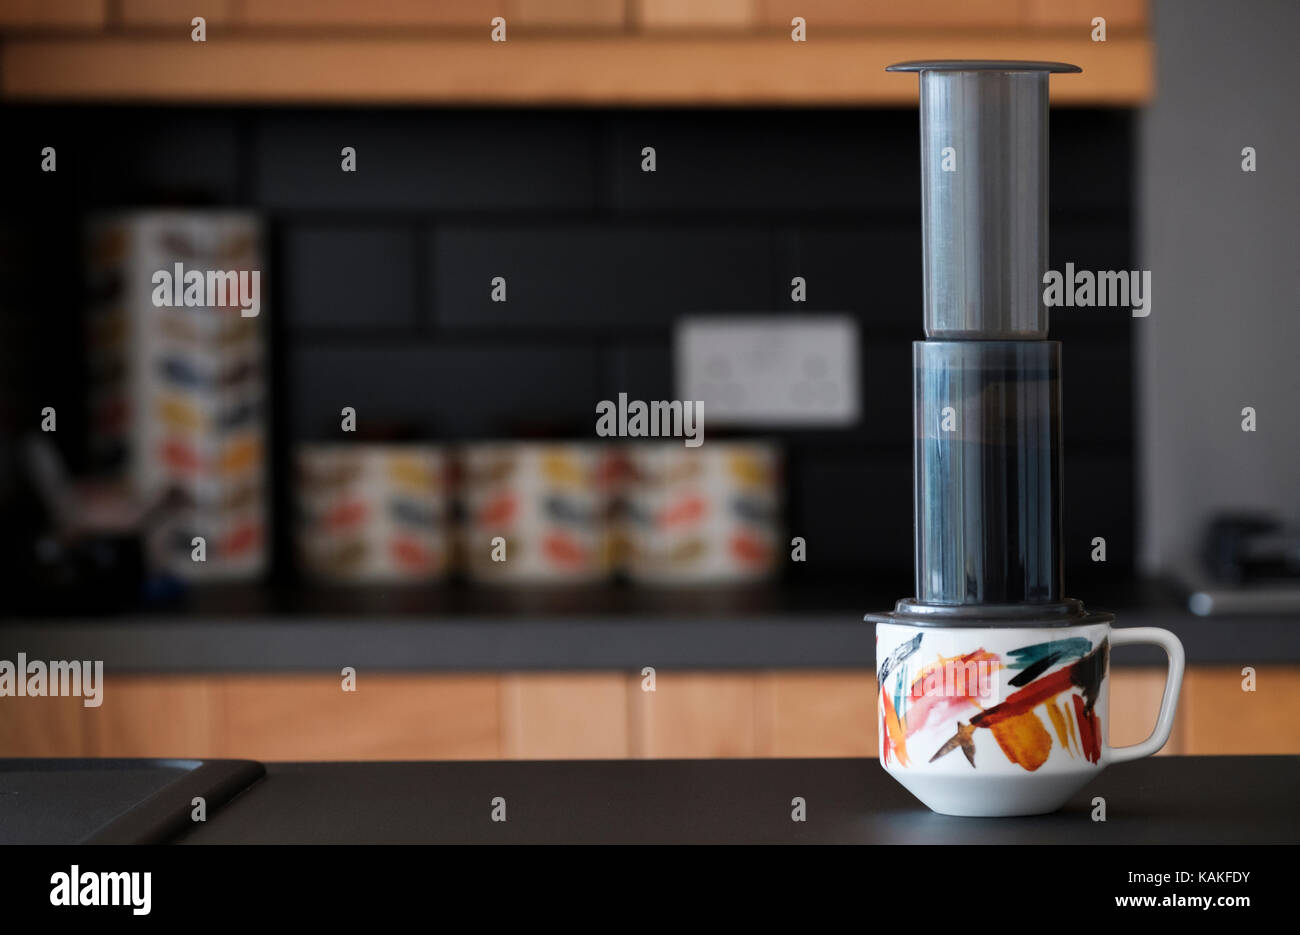 An aeropress.inc coffee maker being used to brew coffee in a domestic kitchen - Stock Image